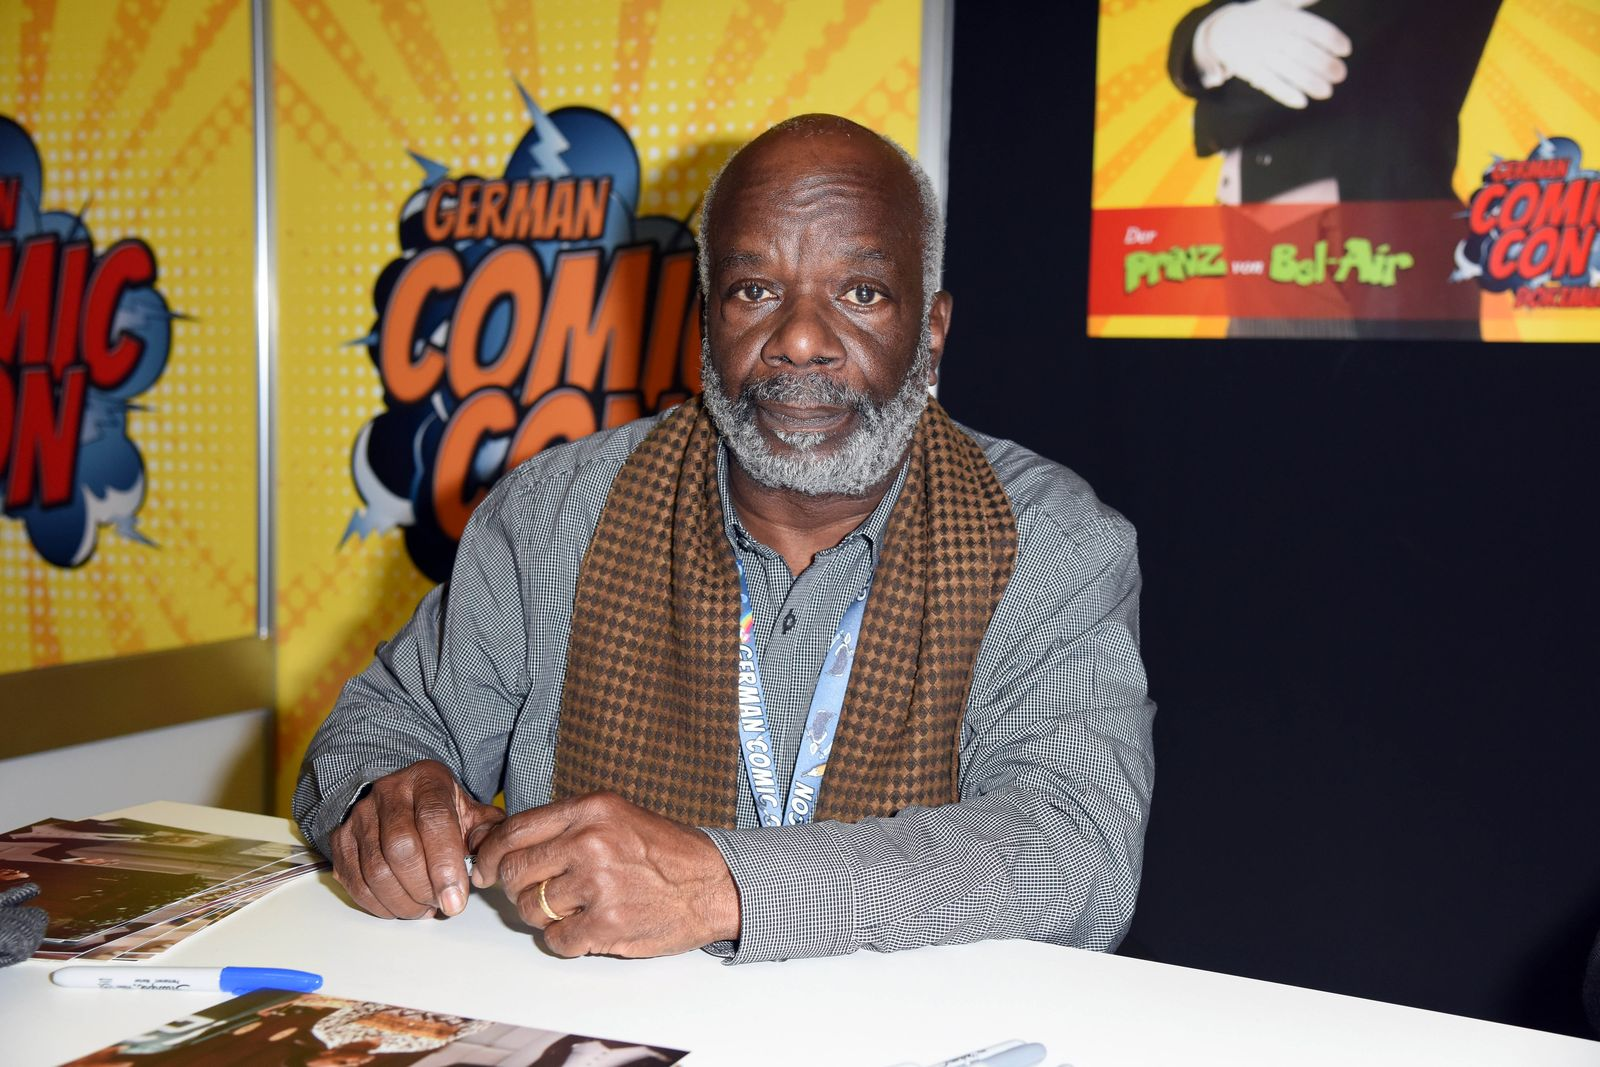 Joseph Marcell/Photo:Getty Images